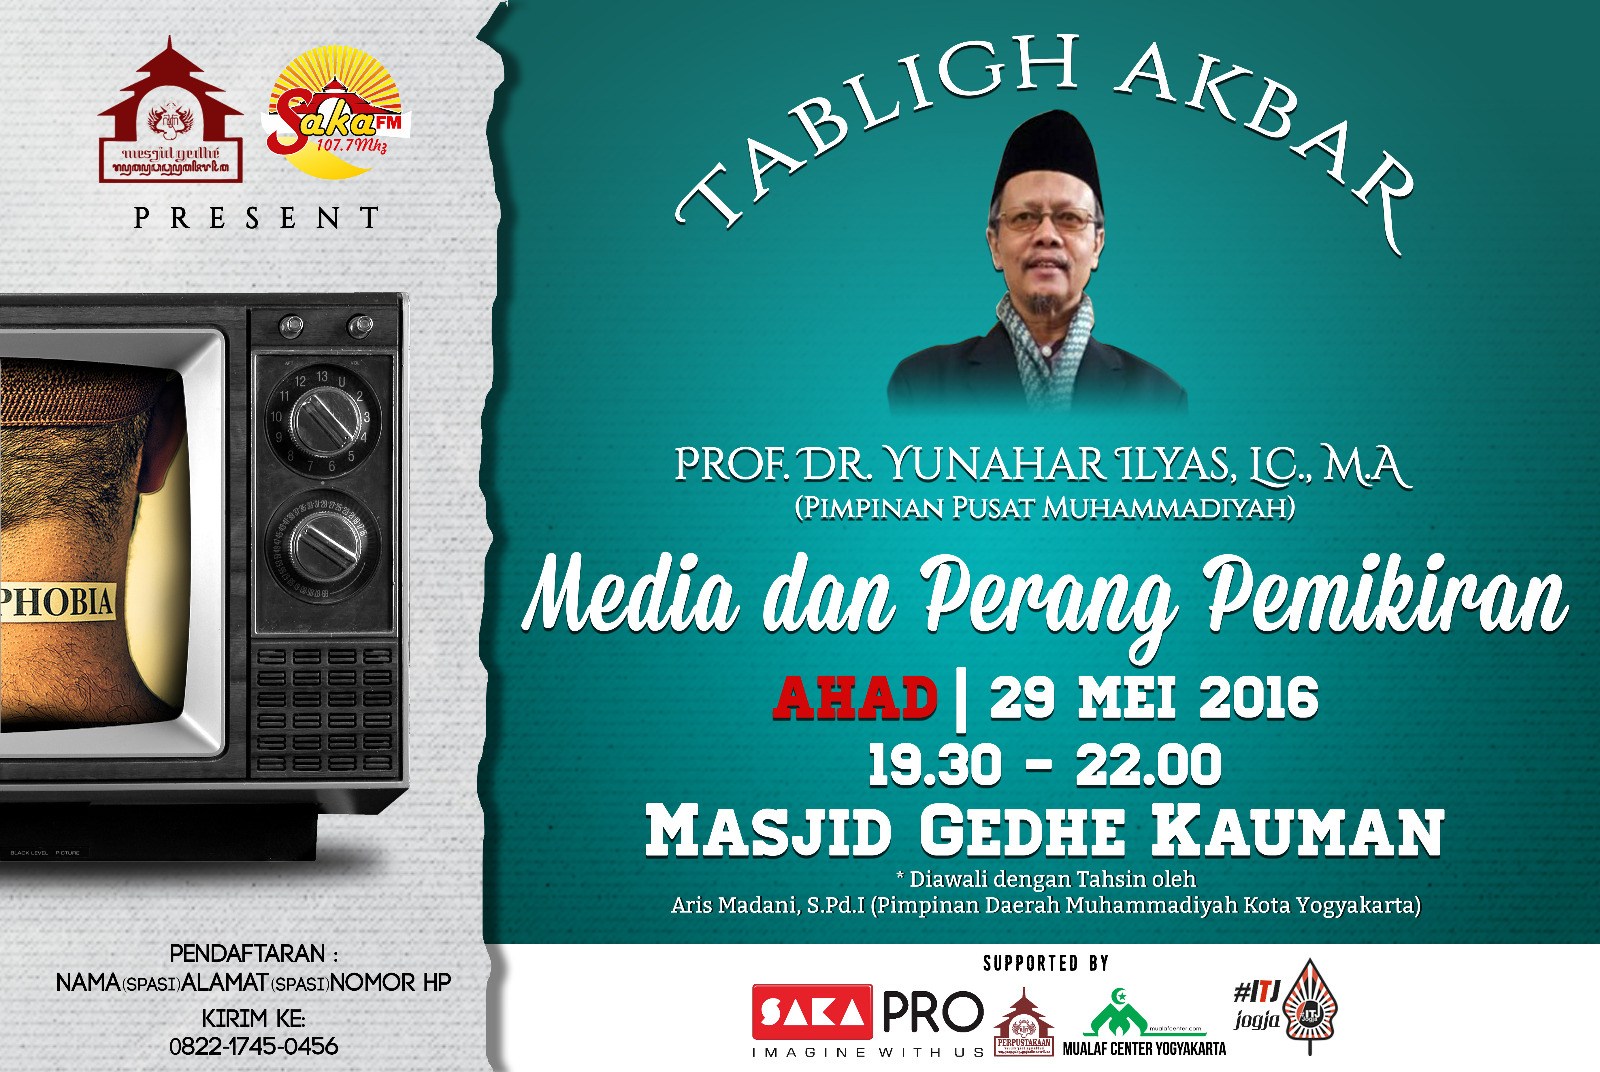 TABLIGH AKBAR KAUMAN